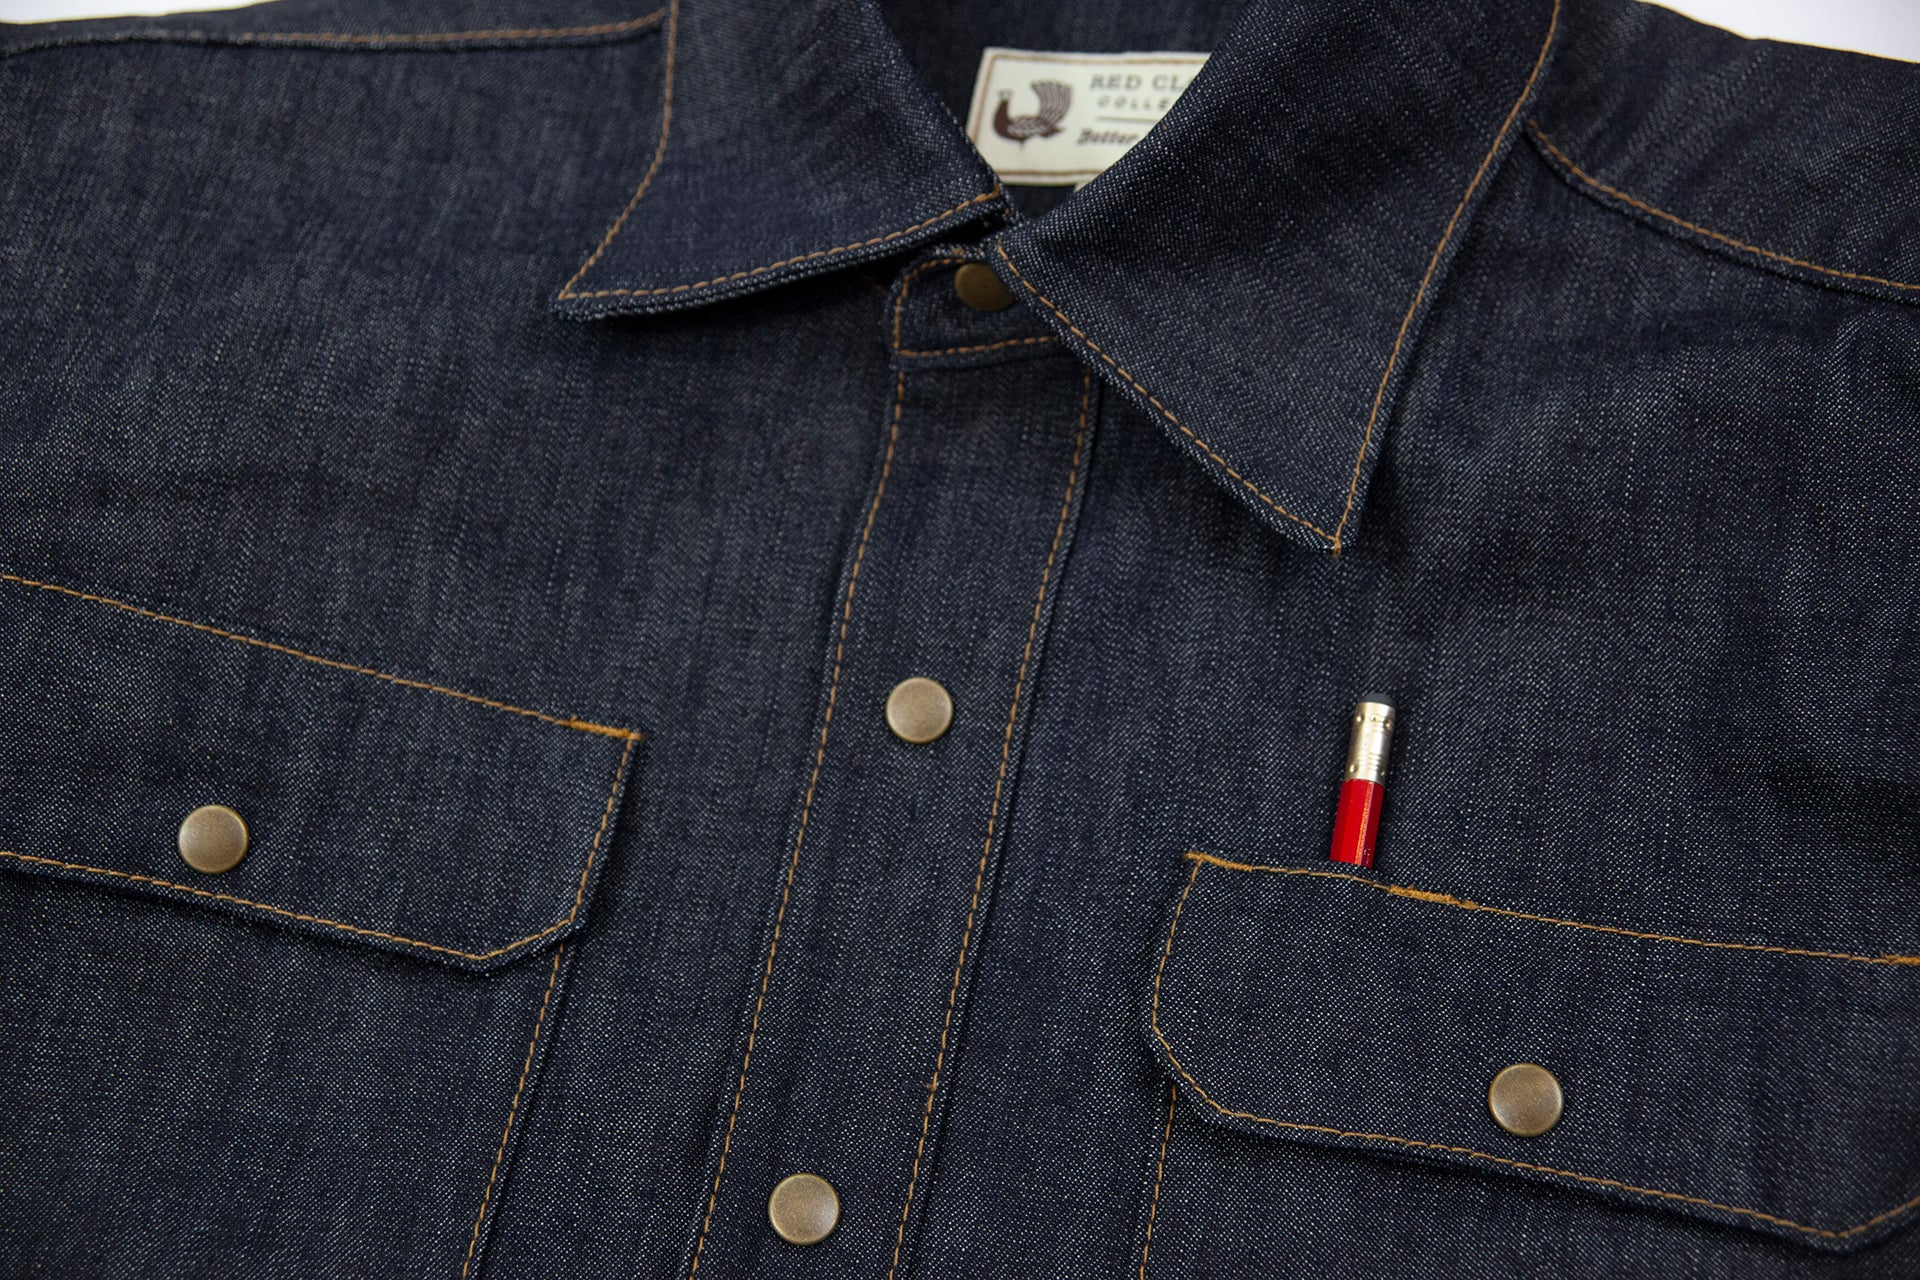 selvage denim work shirt, work shirt, made in usa, durable shirt, heavy duty shirt, made to last, made in portland, quality clothing, durable work shirt, selvage denim, moto, witham work shirt, red clouds shirt